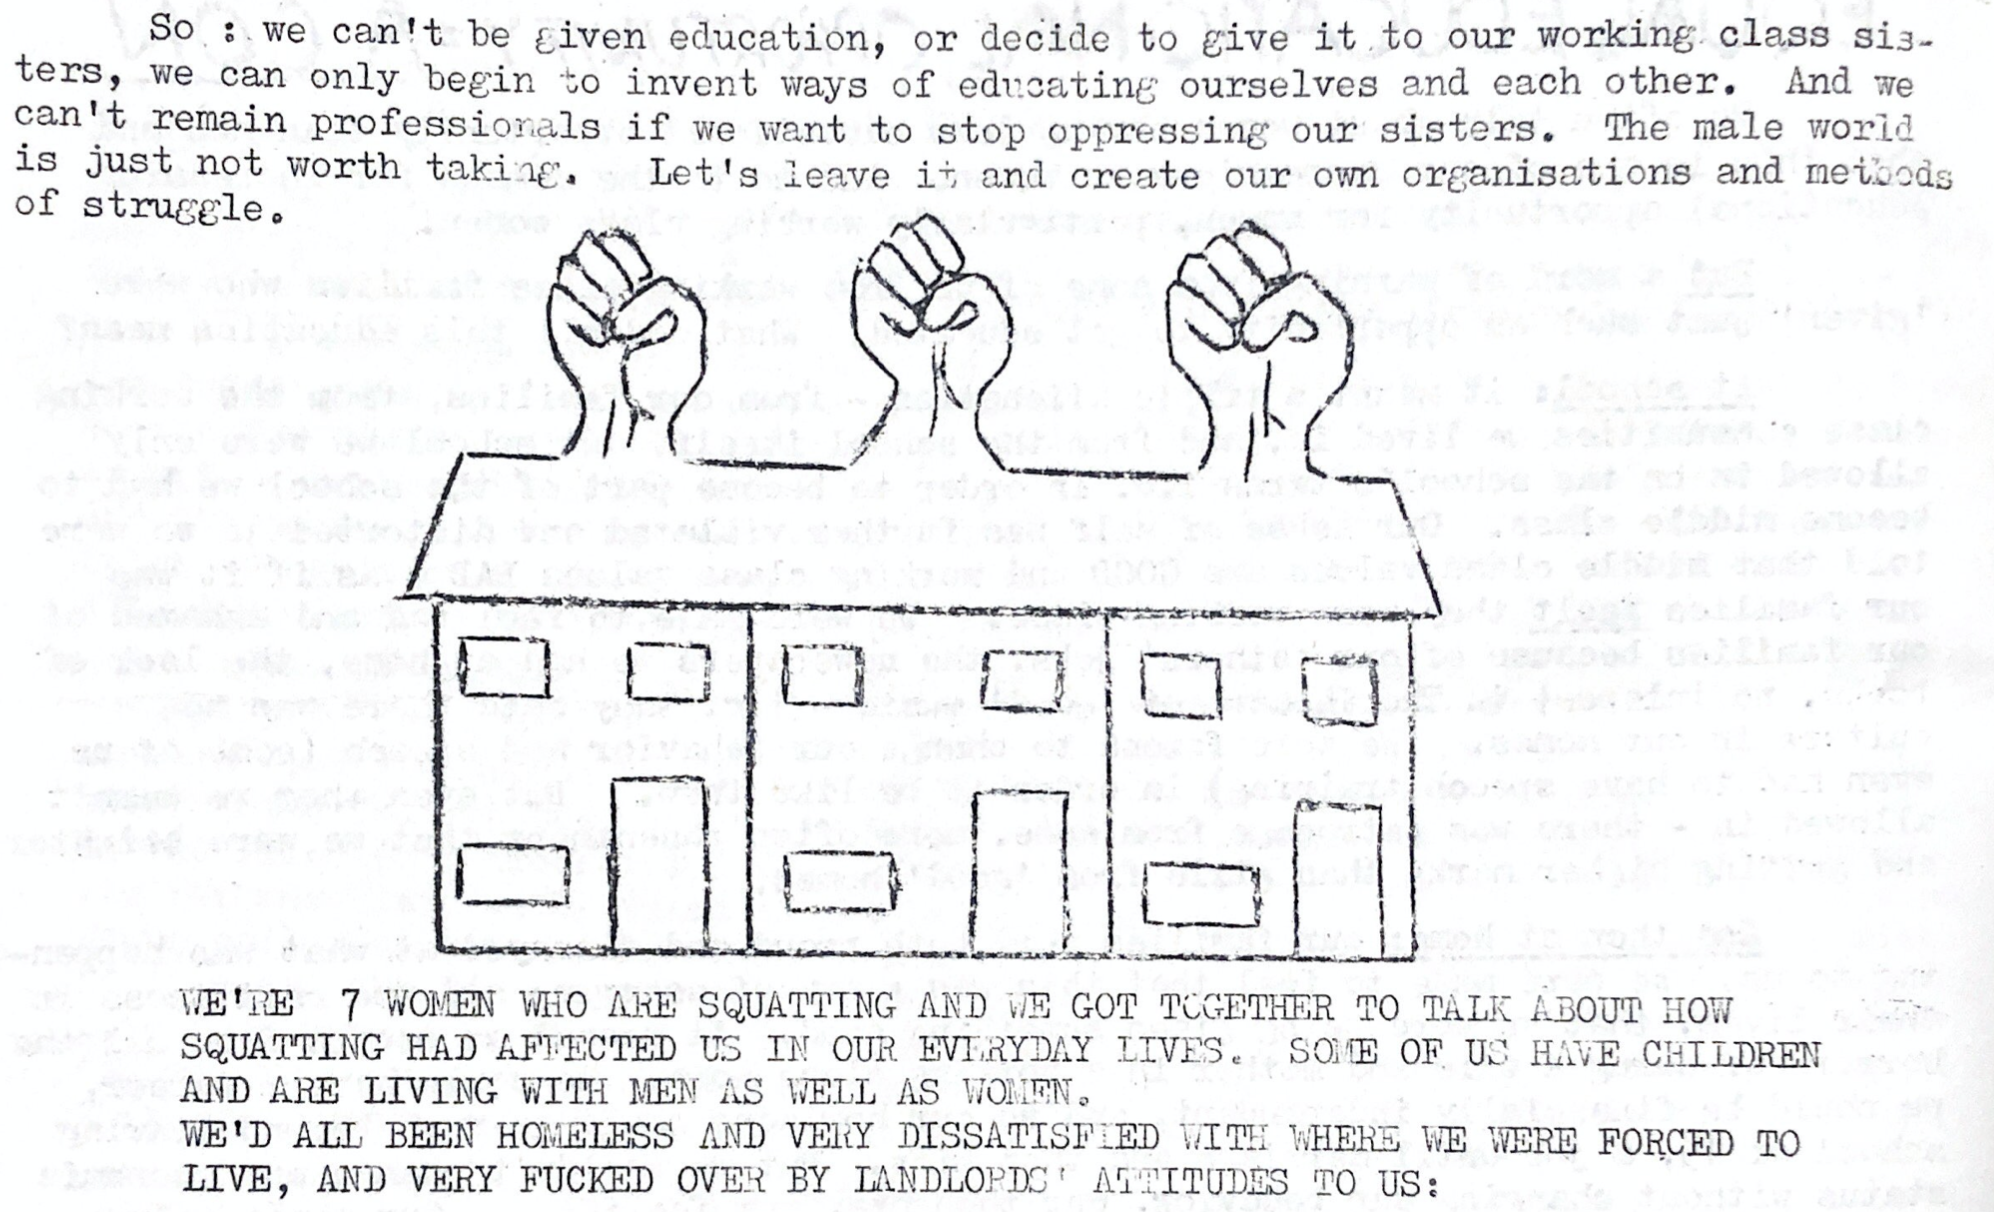 Excerpt from the Libertarian Women's Network Newssheet no. 11 (c.1972), featuring an illustration of a row of terraced houses with a raised fist coming out of each roof. The text above and below discusses how seven women in Oxford established their own methods of learning and teaching each other about struggle, including a squat.